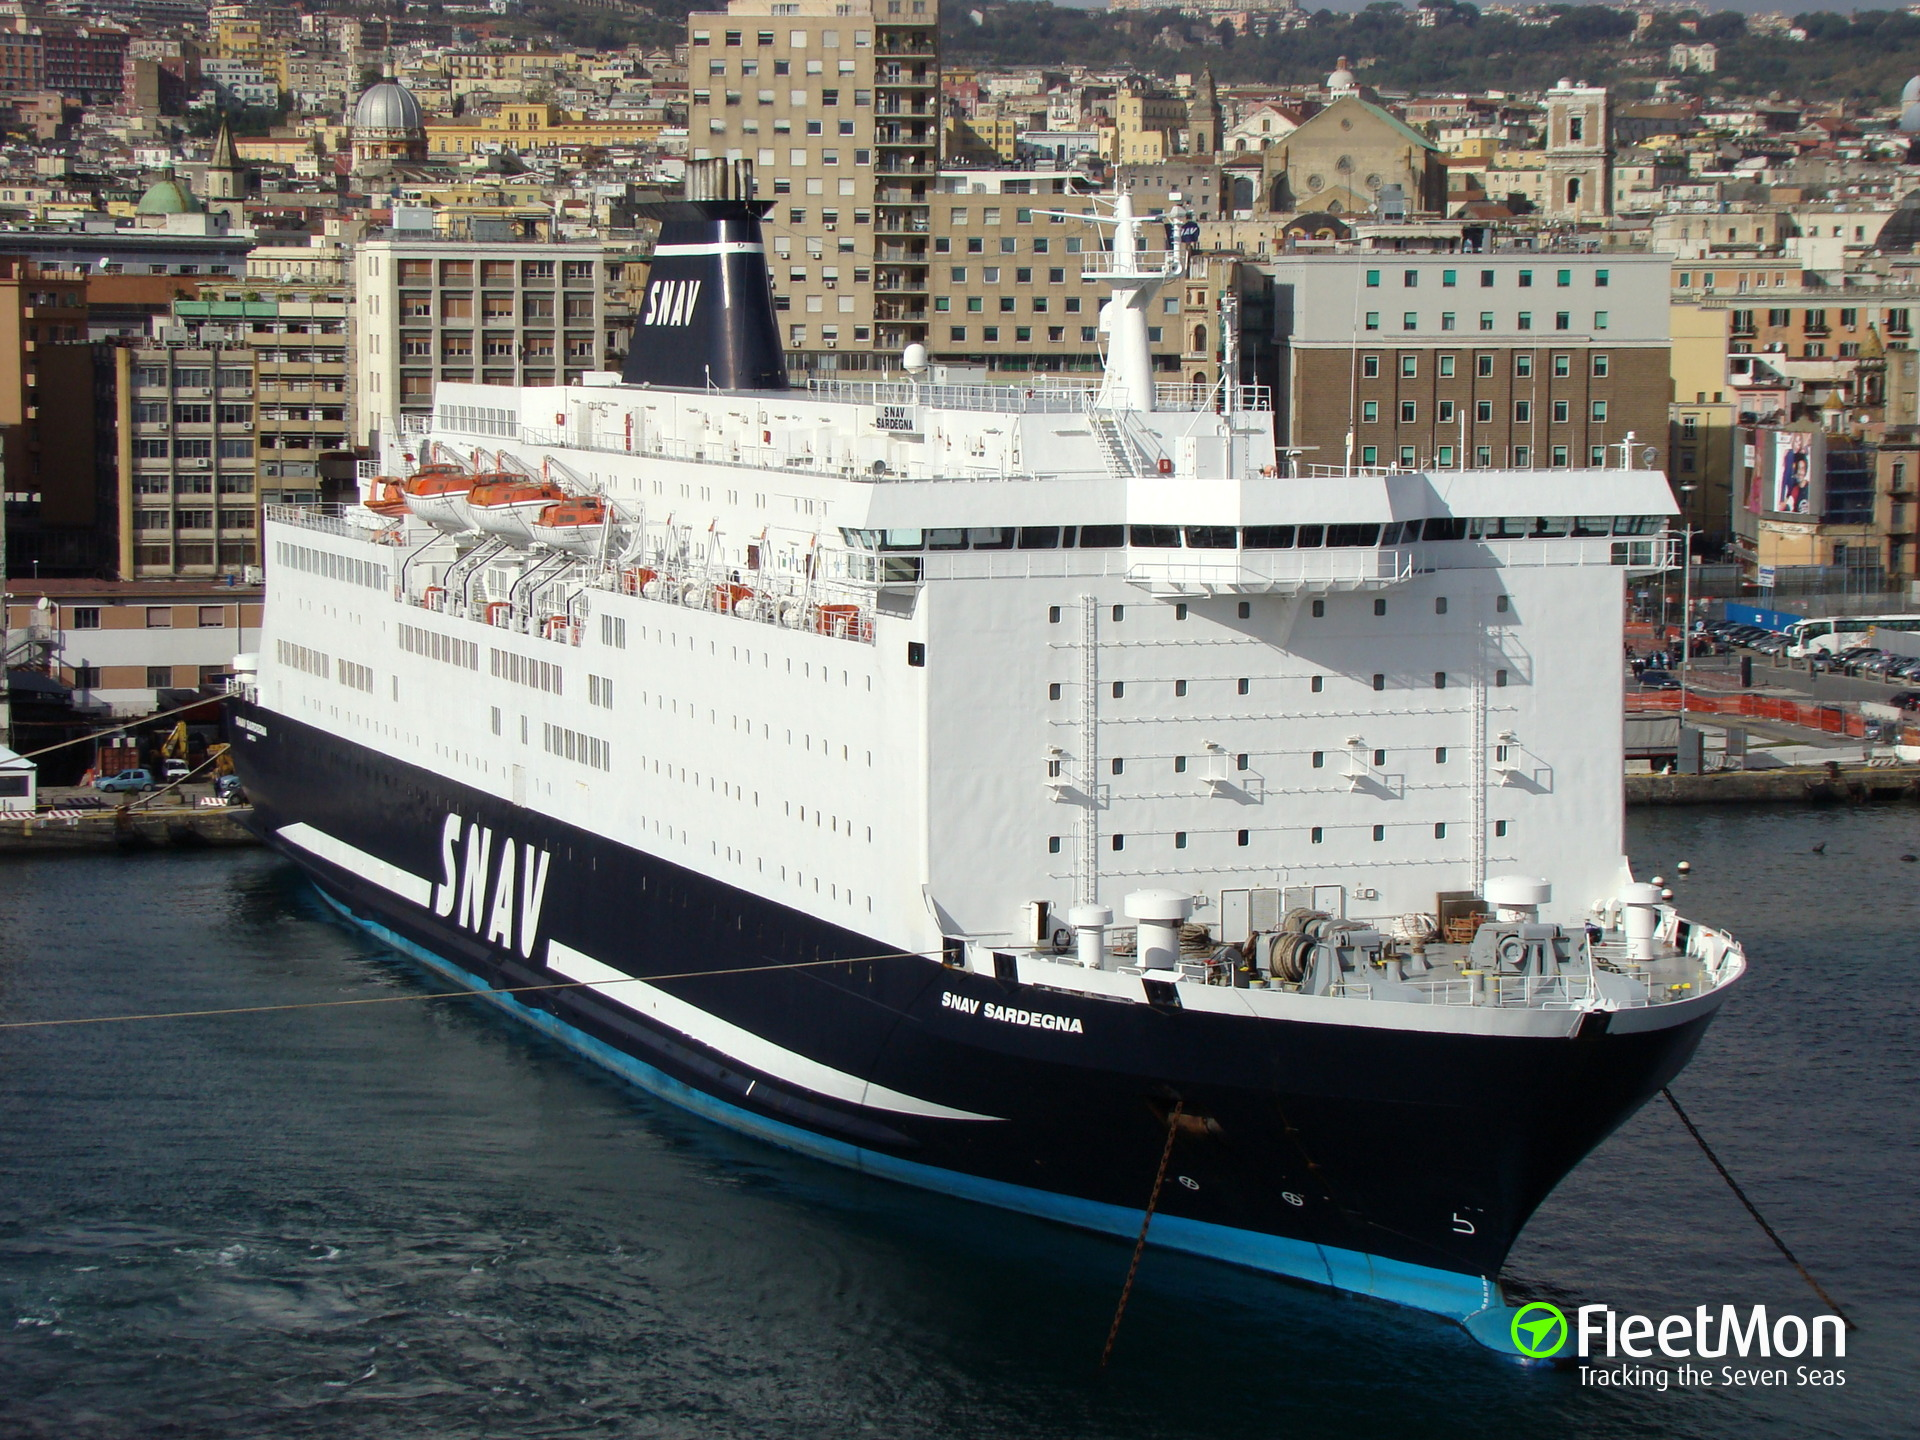 Ferry SNAV SARDEGNA troubled, Med